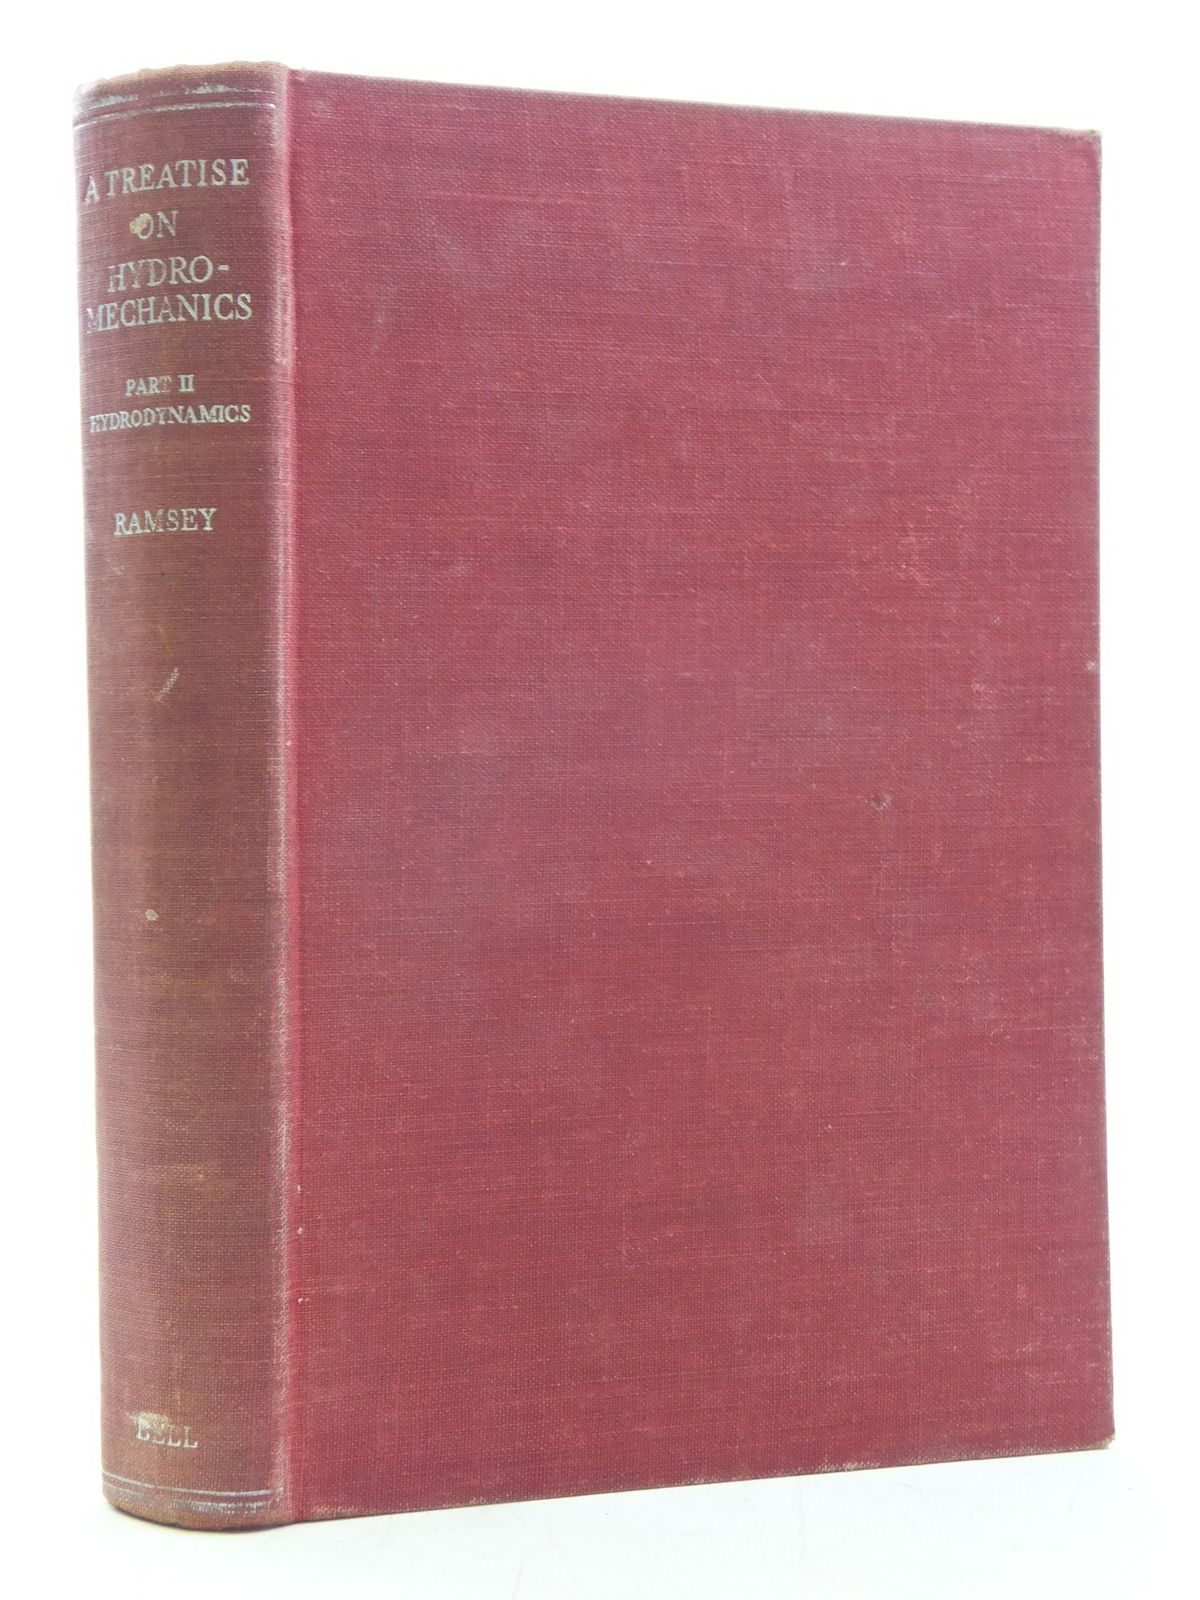 Photo of A TREATISE ON HYDROMECHANICS PART II HYDRODYNAMICS written by Ramsey, A.S. published by G. Bell & Sons Ltd. (STOCK CODE: 2119591)  for sale by Stella & Rose's Books